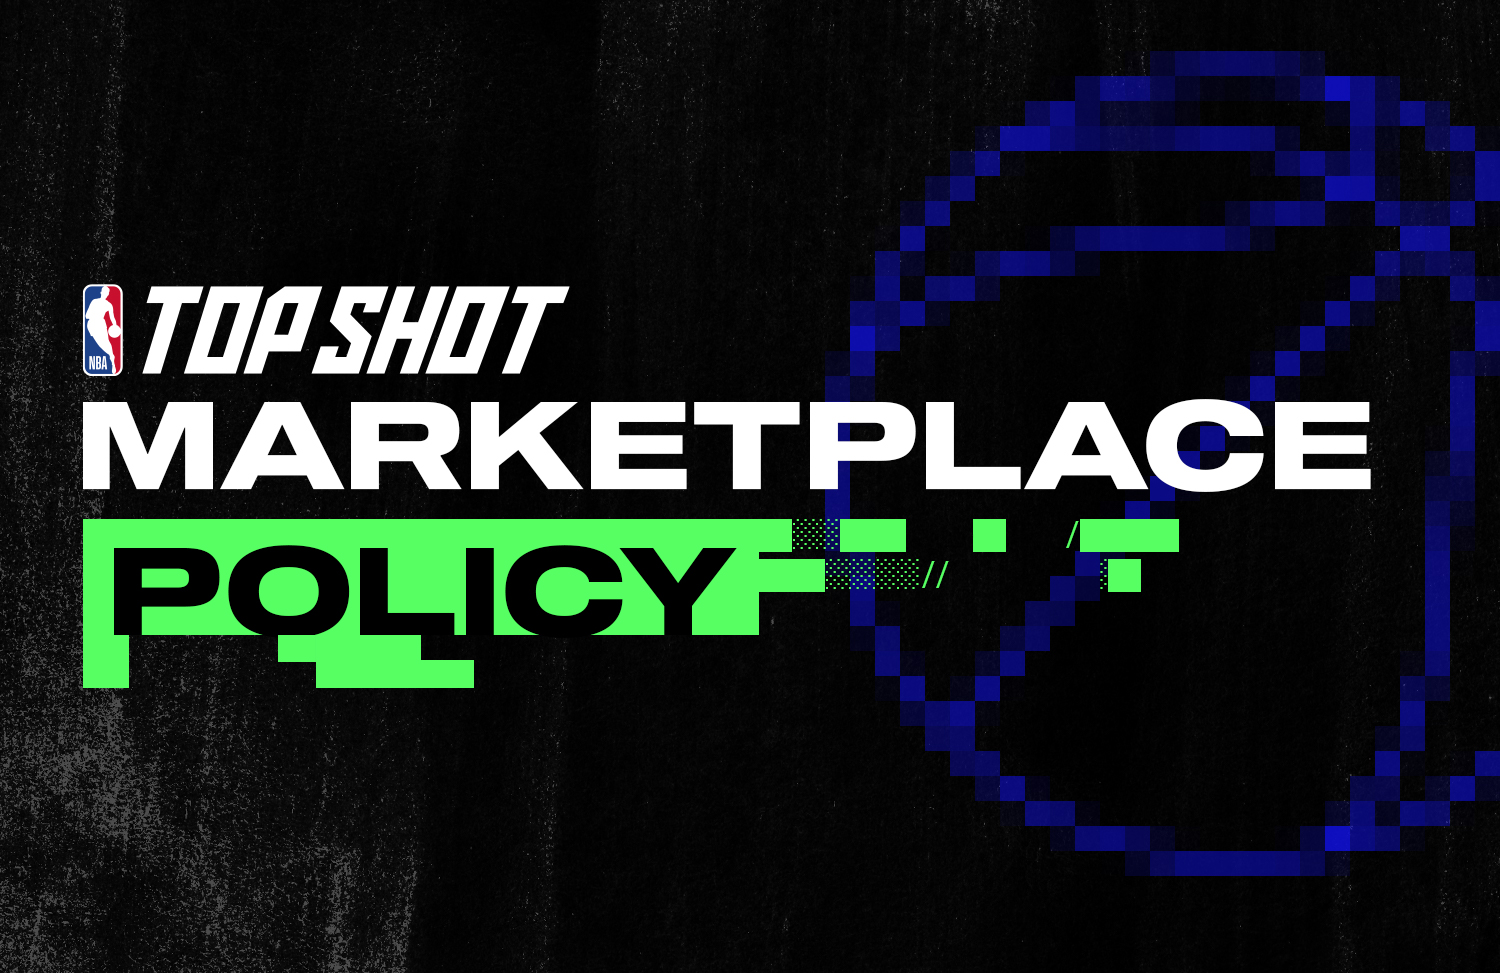 We've updated our policies around bots on NBA Top Shot